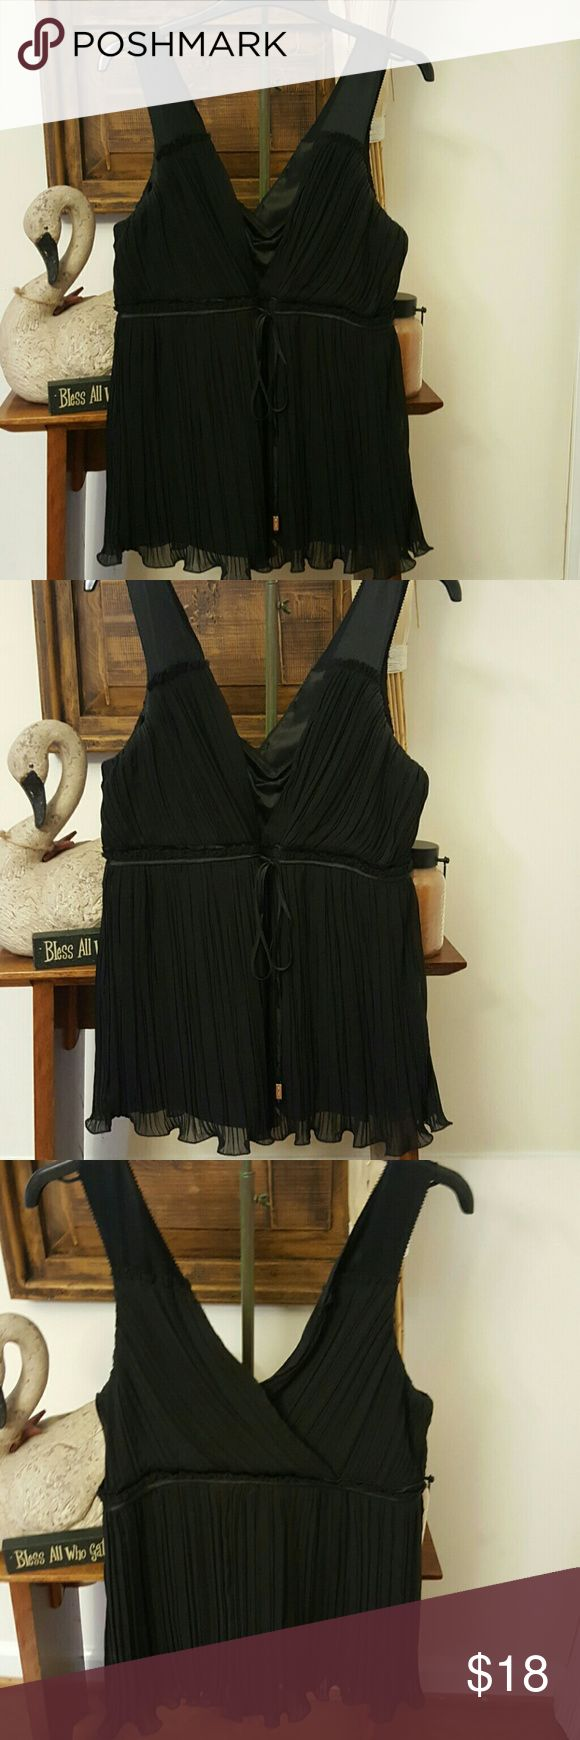 WHBM Black flowing camisole Beautiful black cami with tie in front. Small silver bars are end of ties. V-neck and V-back style. Fabric flows and is pleated. Great condition. Very pretty. White House Black Market Tops Camisoles